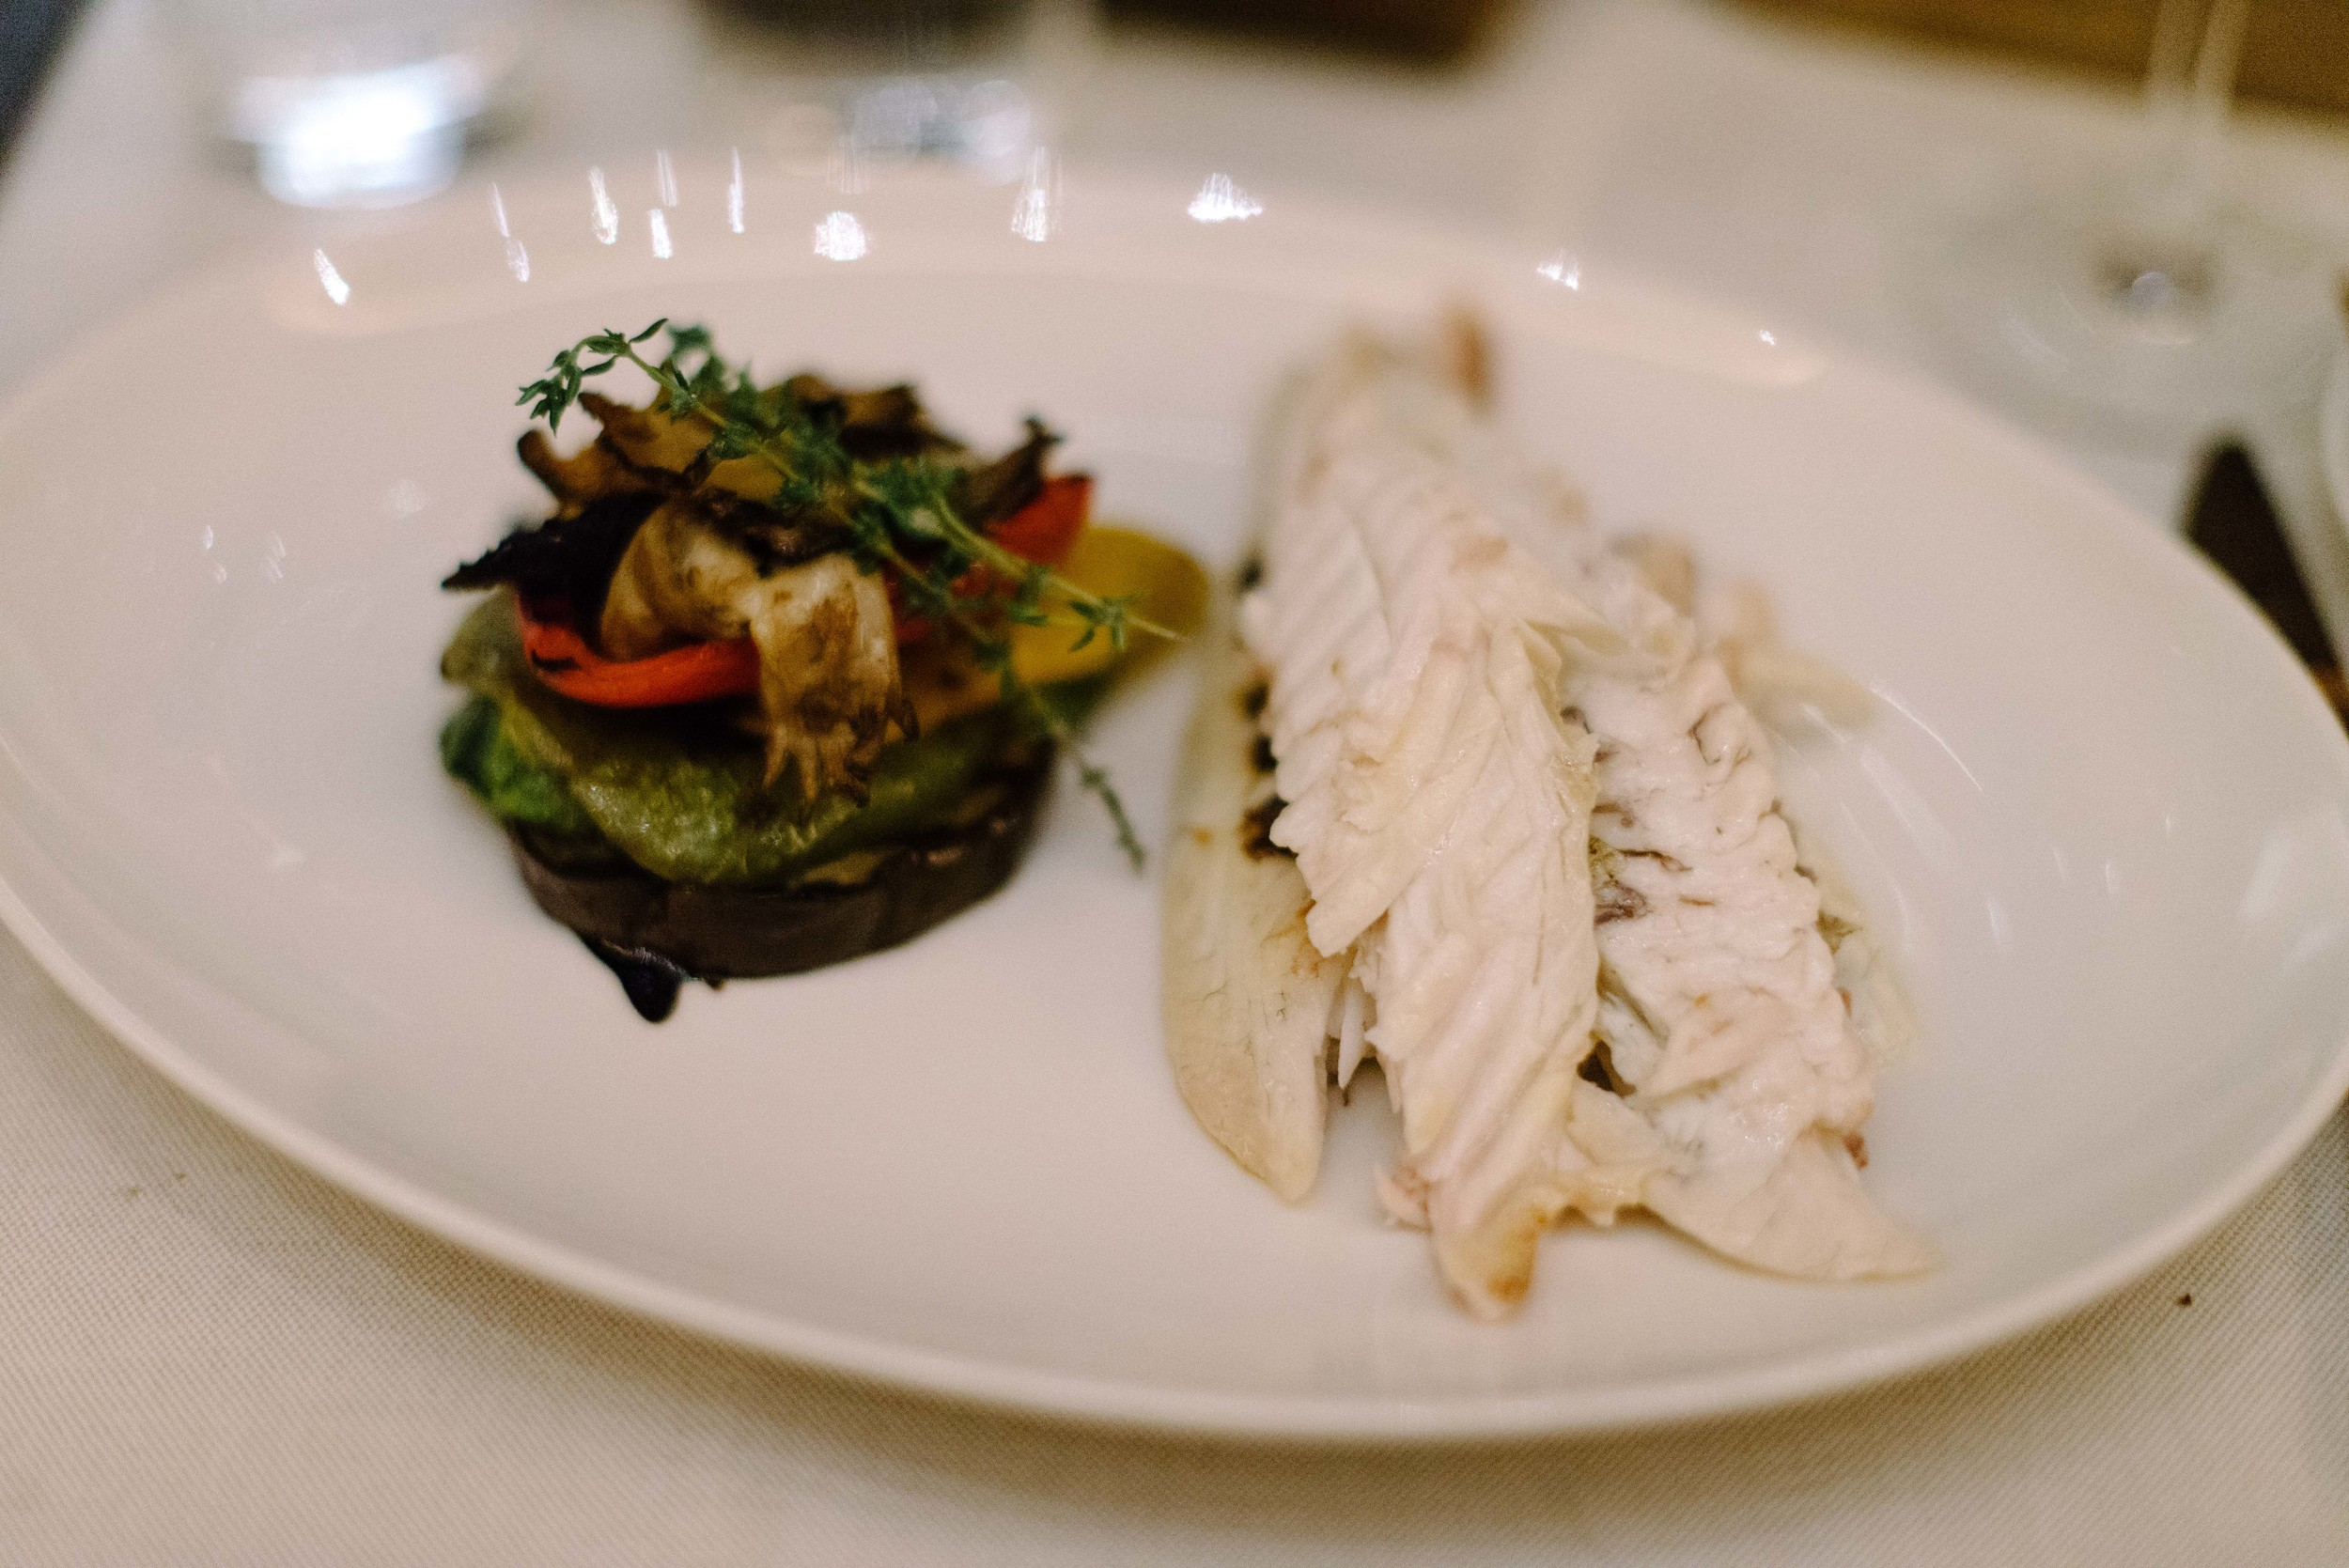 Grilled fish of the day with sautéed vegetables and thyme.